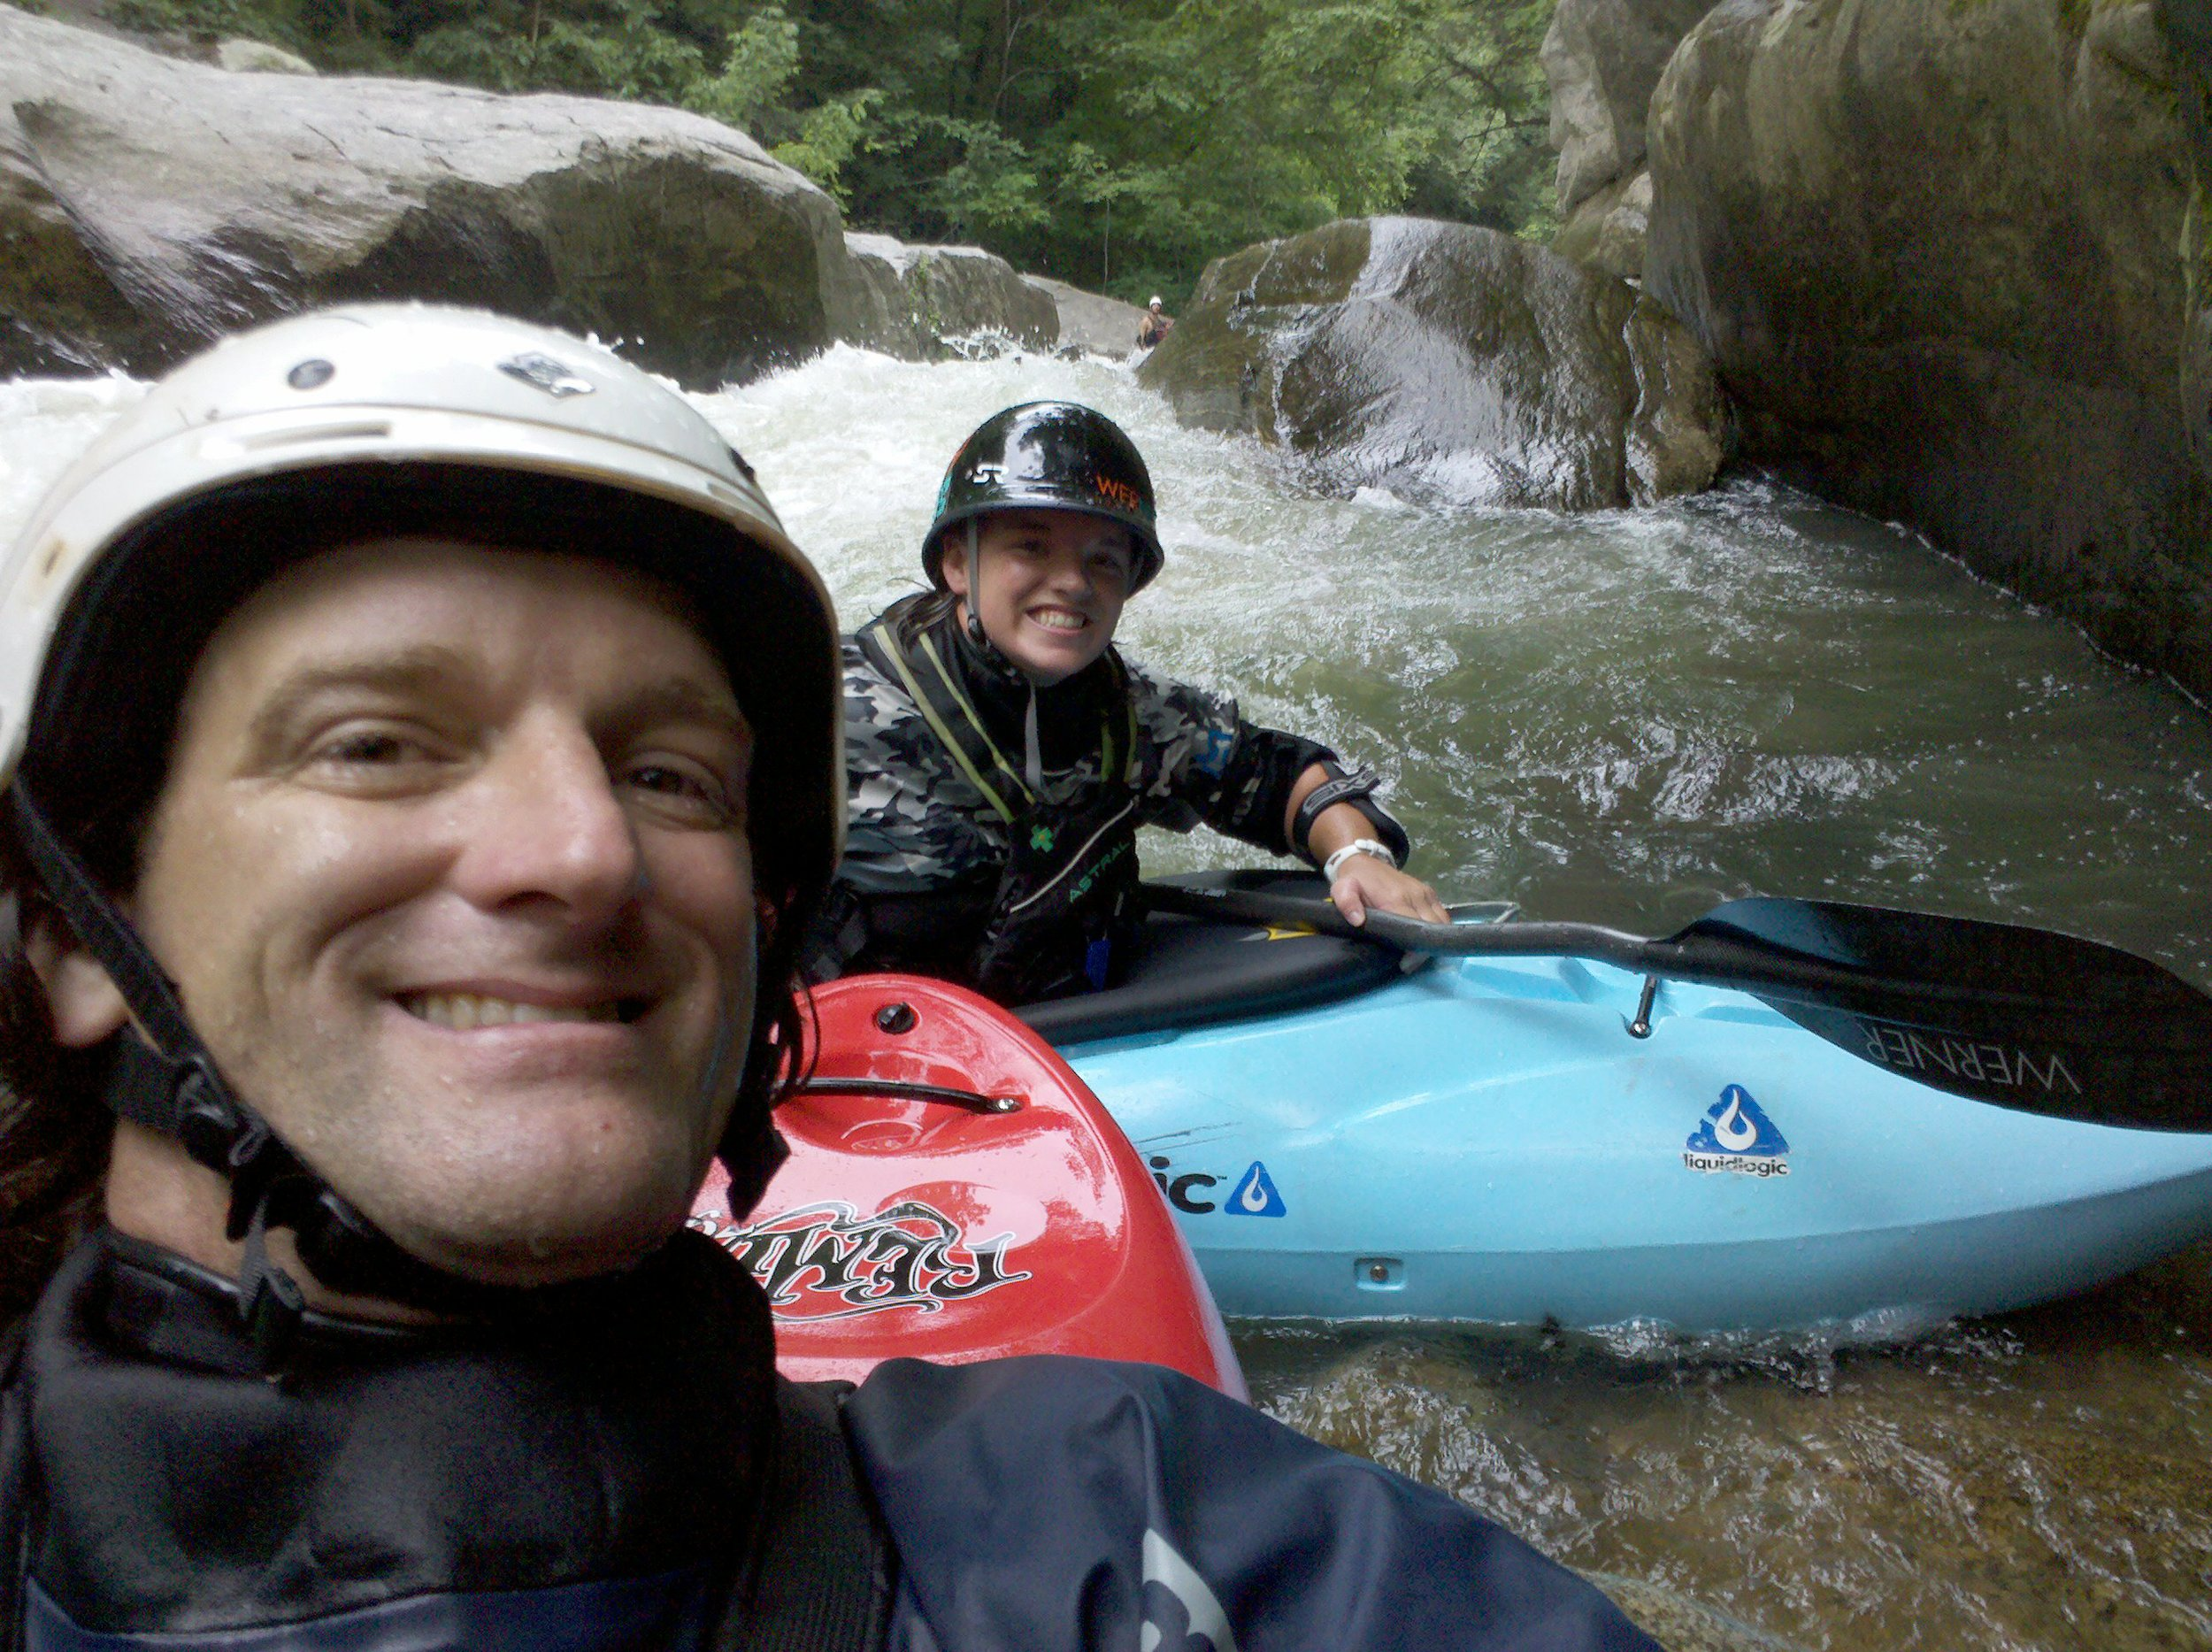 Along the way Adriene had a lot of help from many people. One of the biggest influences on her life was Shane Benedict. Shane taught Adriene much more than just about kayaking, he taught her life lessons and how to get over hardships. He will always be like a father to Adriene. Selfie in the Notch Eddy at Gorilla, Green River, NC 2008